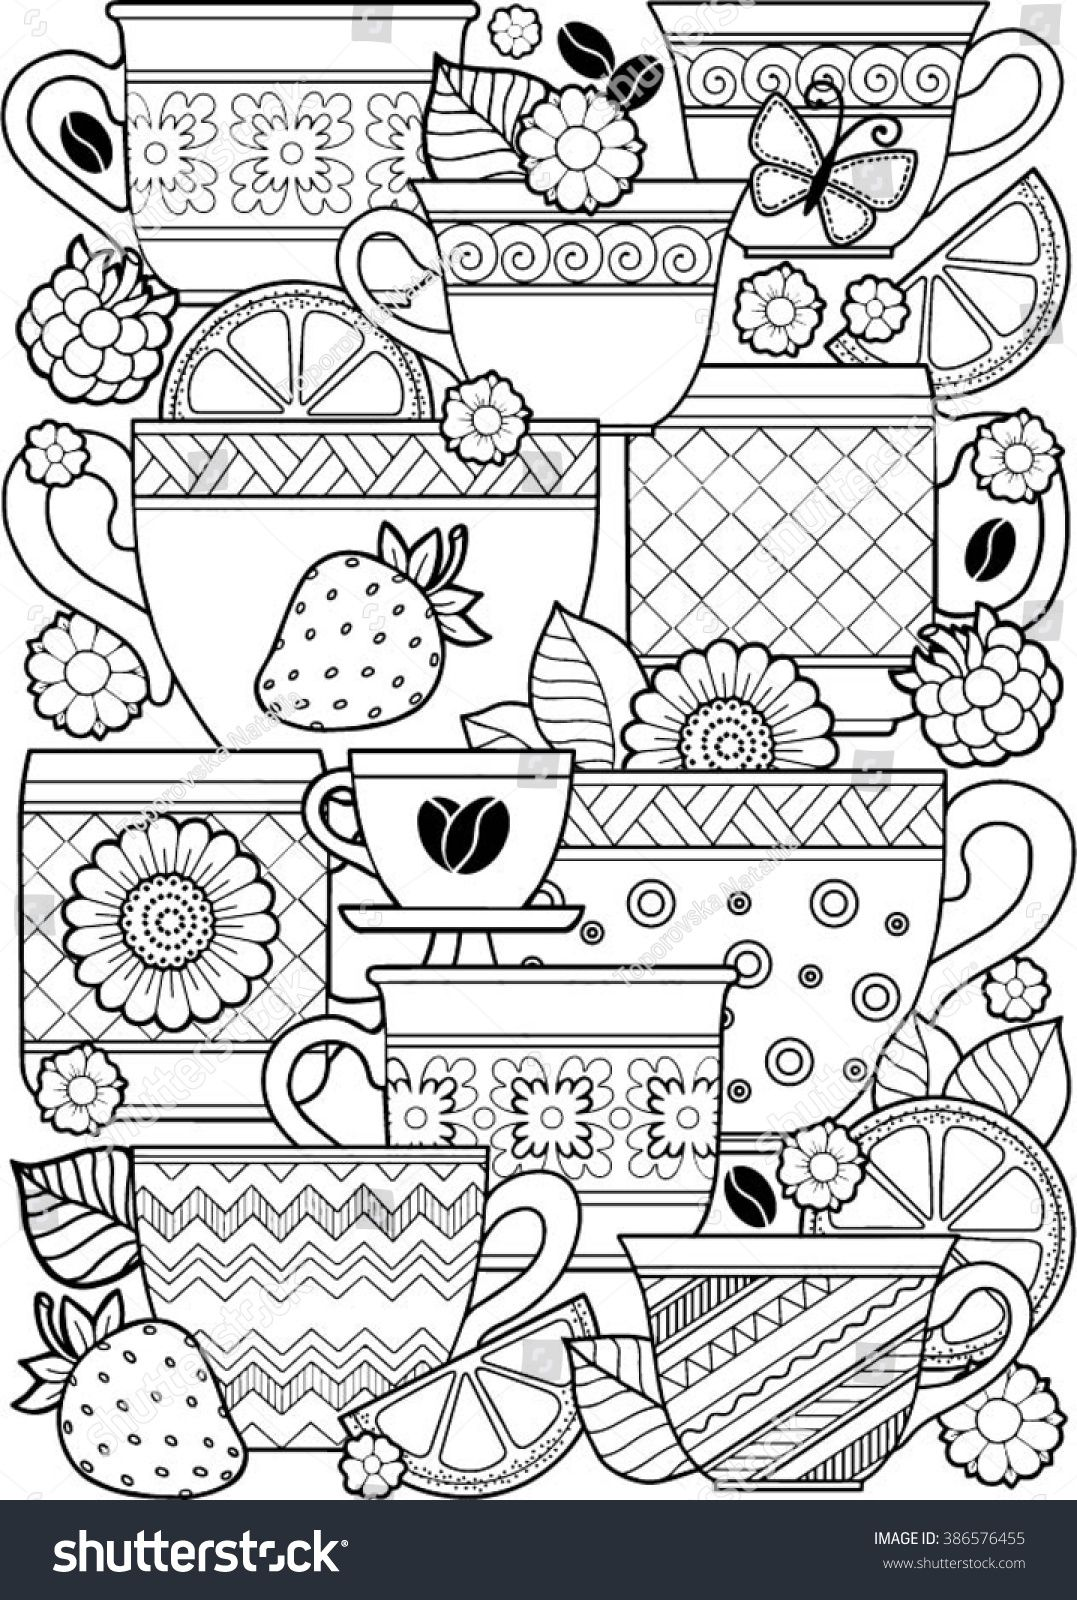 Vector coloring page coloring book for adult cups of herbal tea